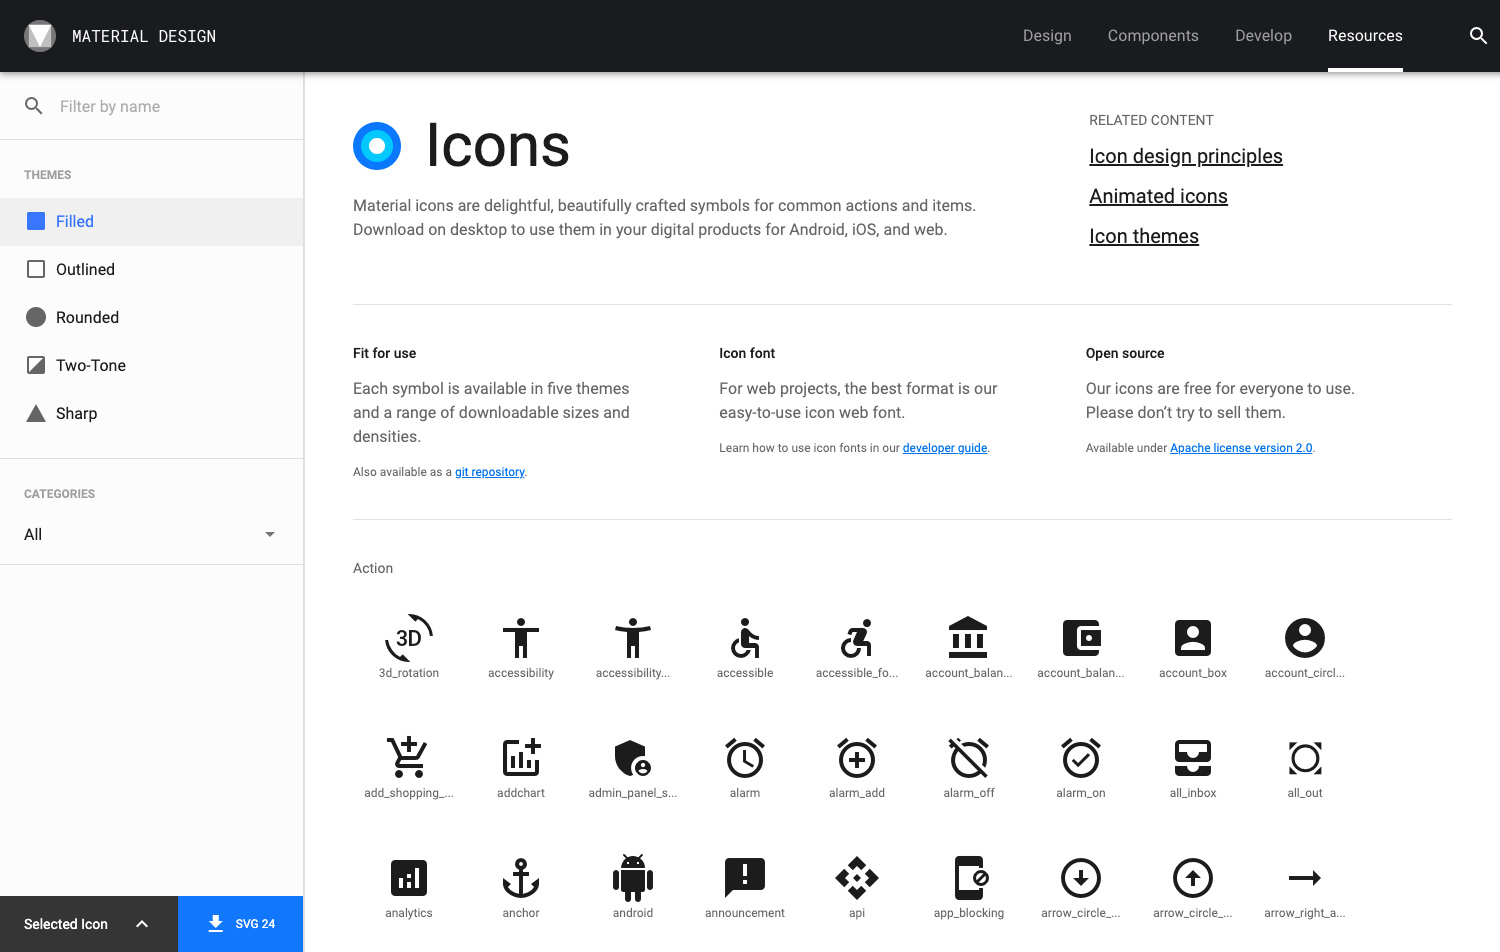 Material Design Icons by Google